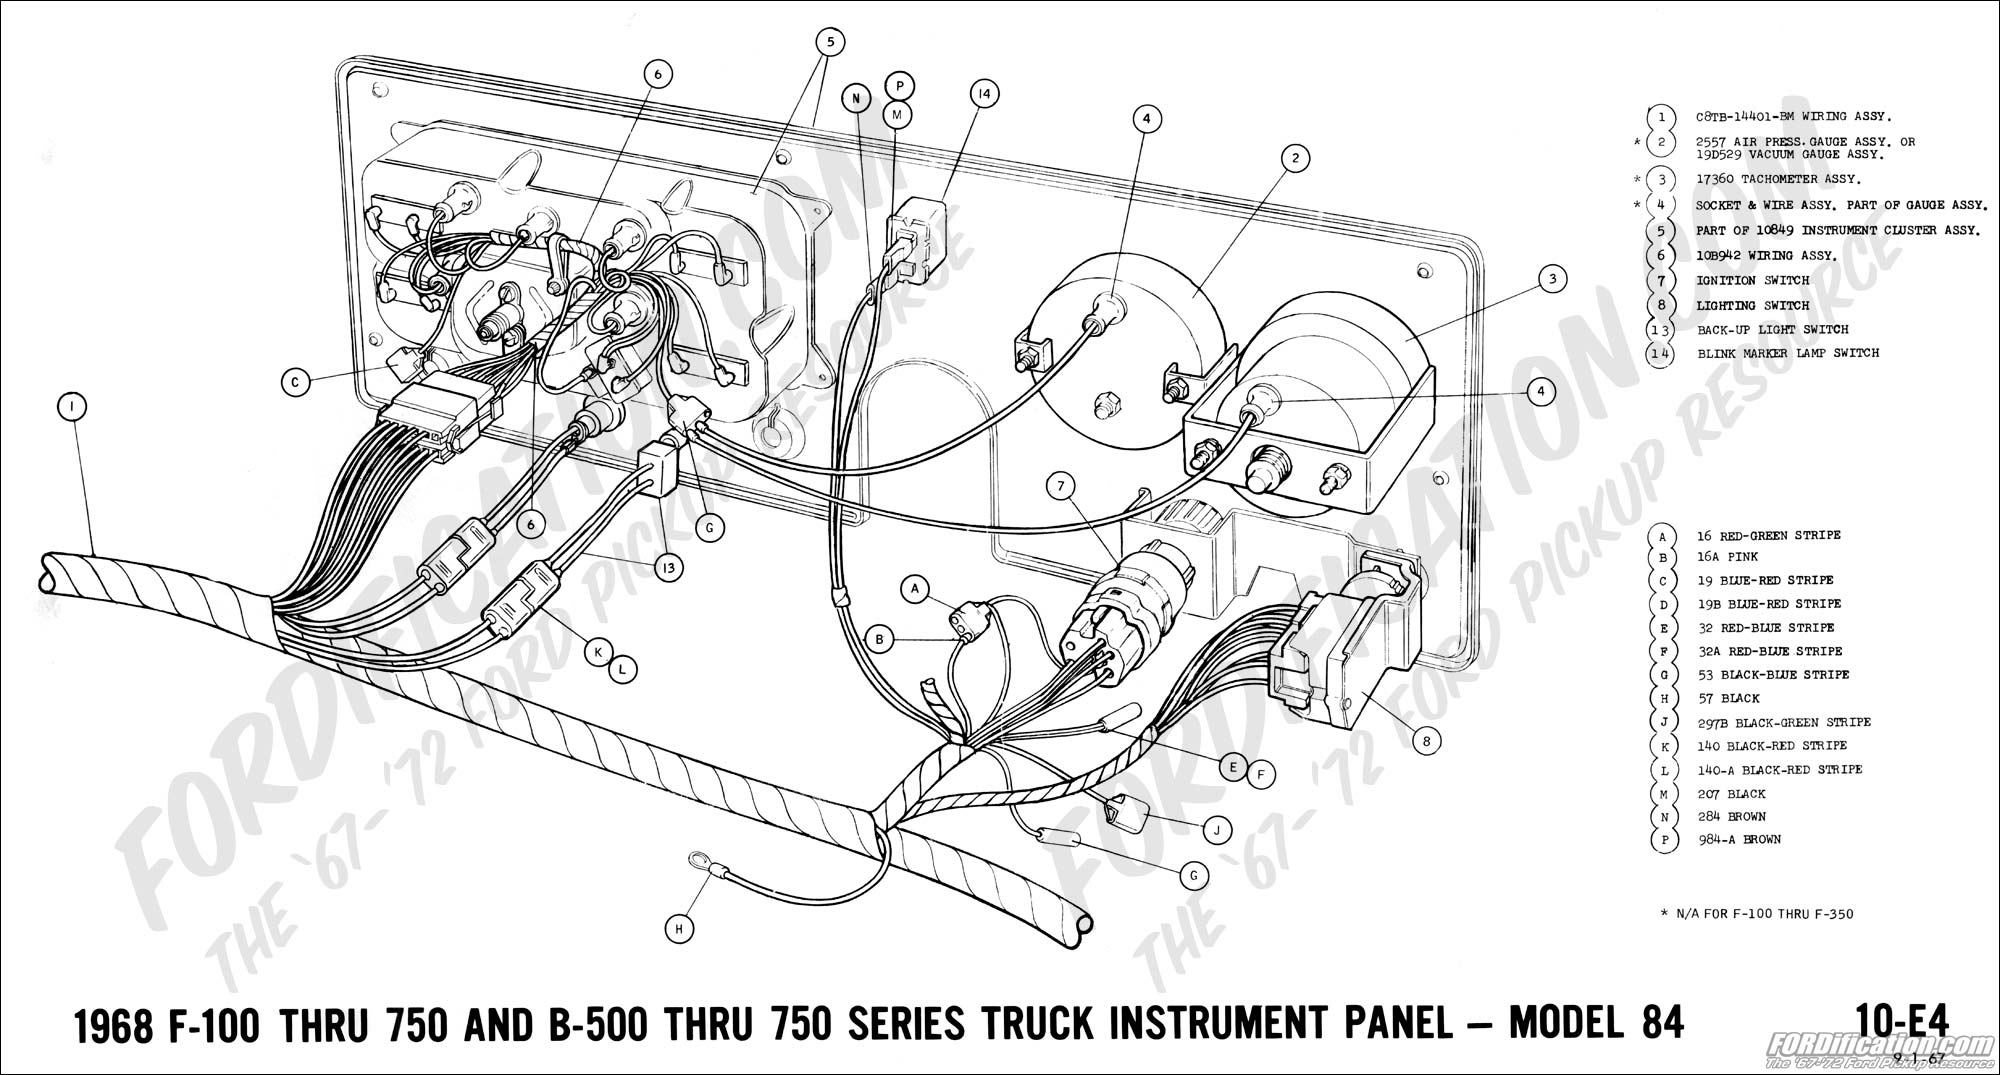 68 06 ford truck technical drawings and schematics section h wiring 1965 ford f100 dash wiring diagram at gsmx.co